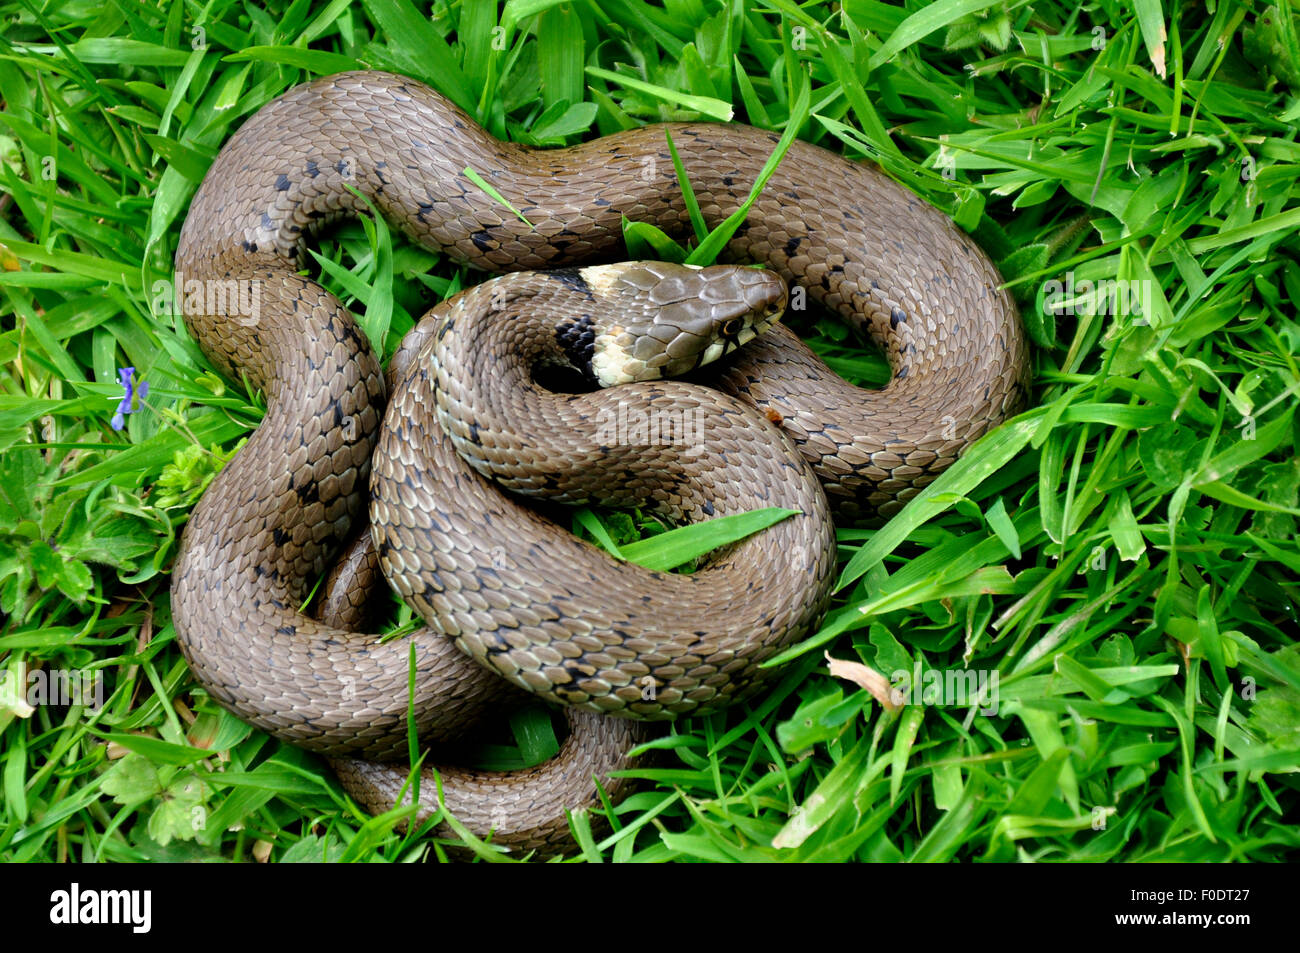 Grass snake curled up in grass UK - Stock Image